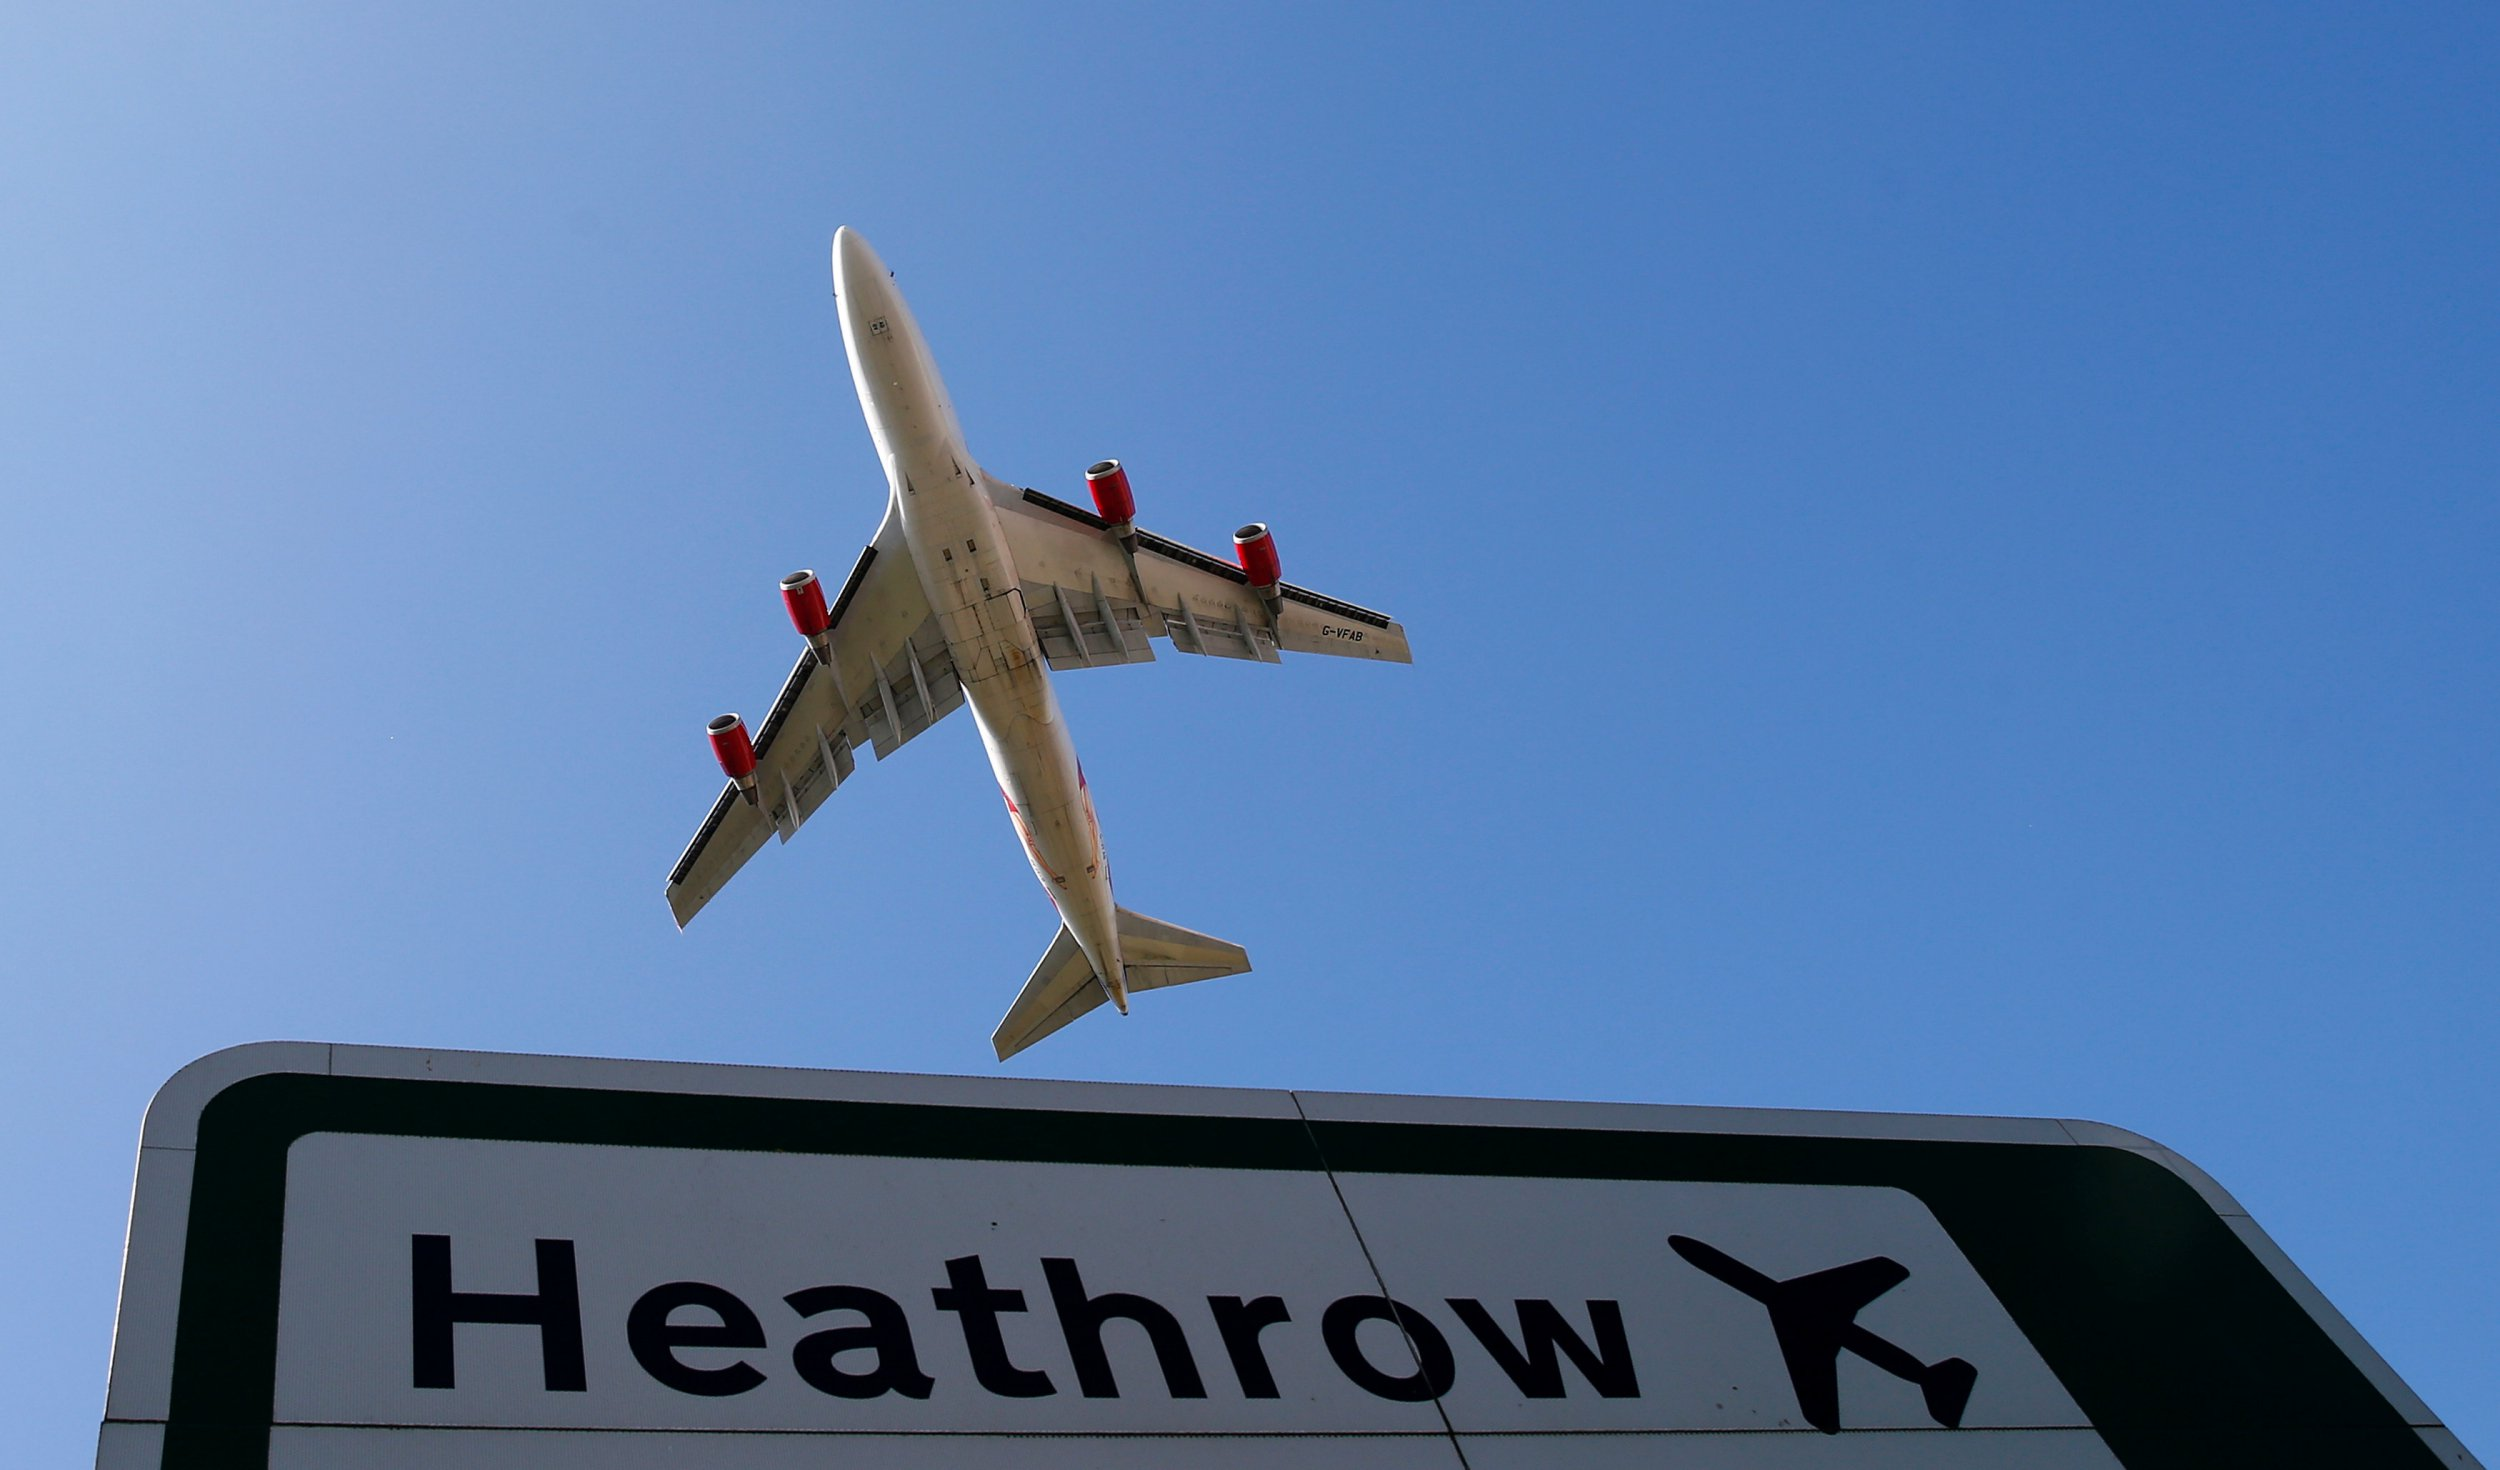 FILE PHOTO: An aircraft takes off from Heathrow airport in west London September 2, 2014. REUTERS/Andrew Winning/File Photo